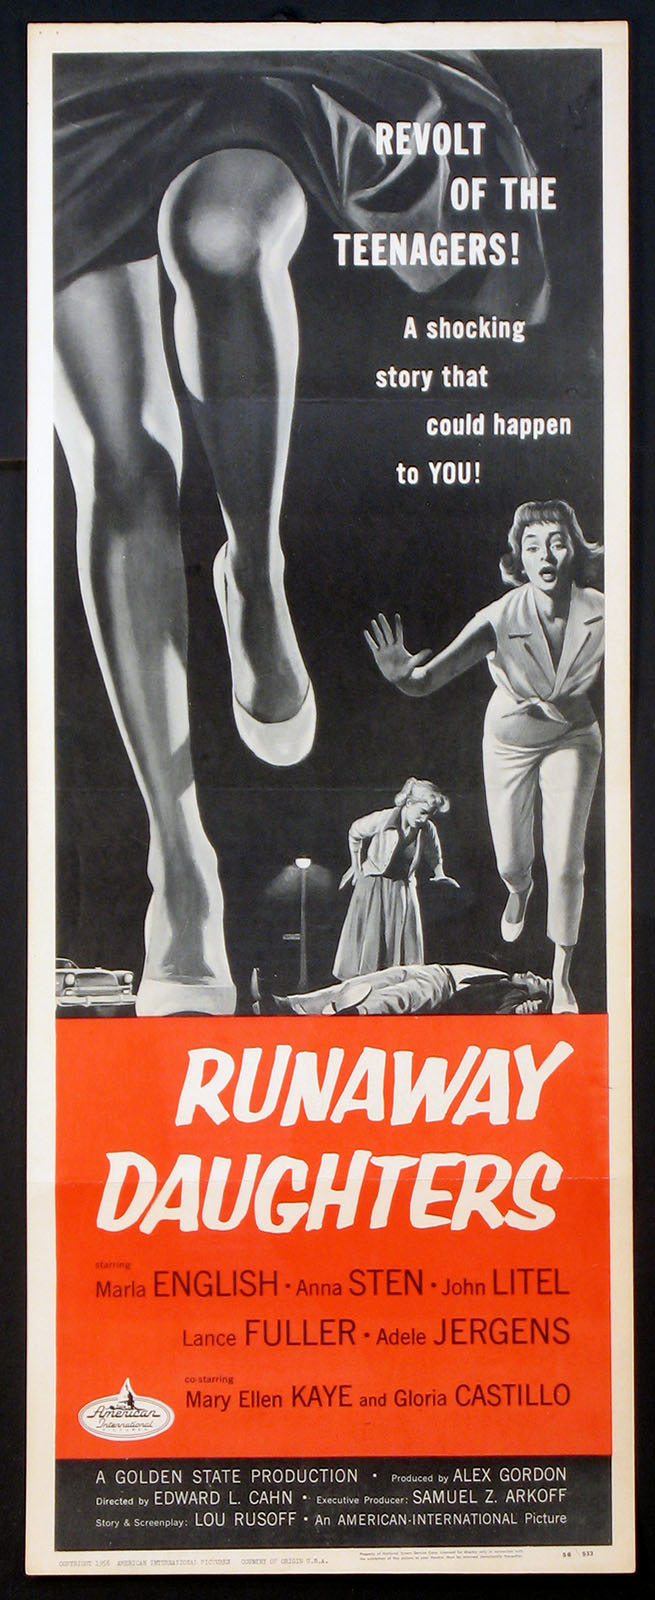 RUNAWAY DAUGHTERS @ FilmPosters.com